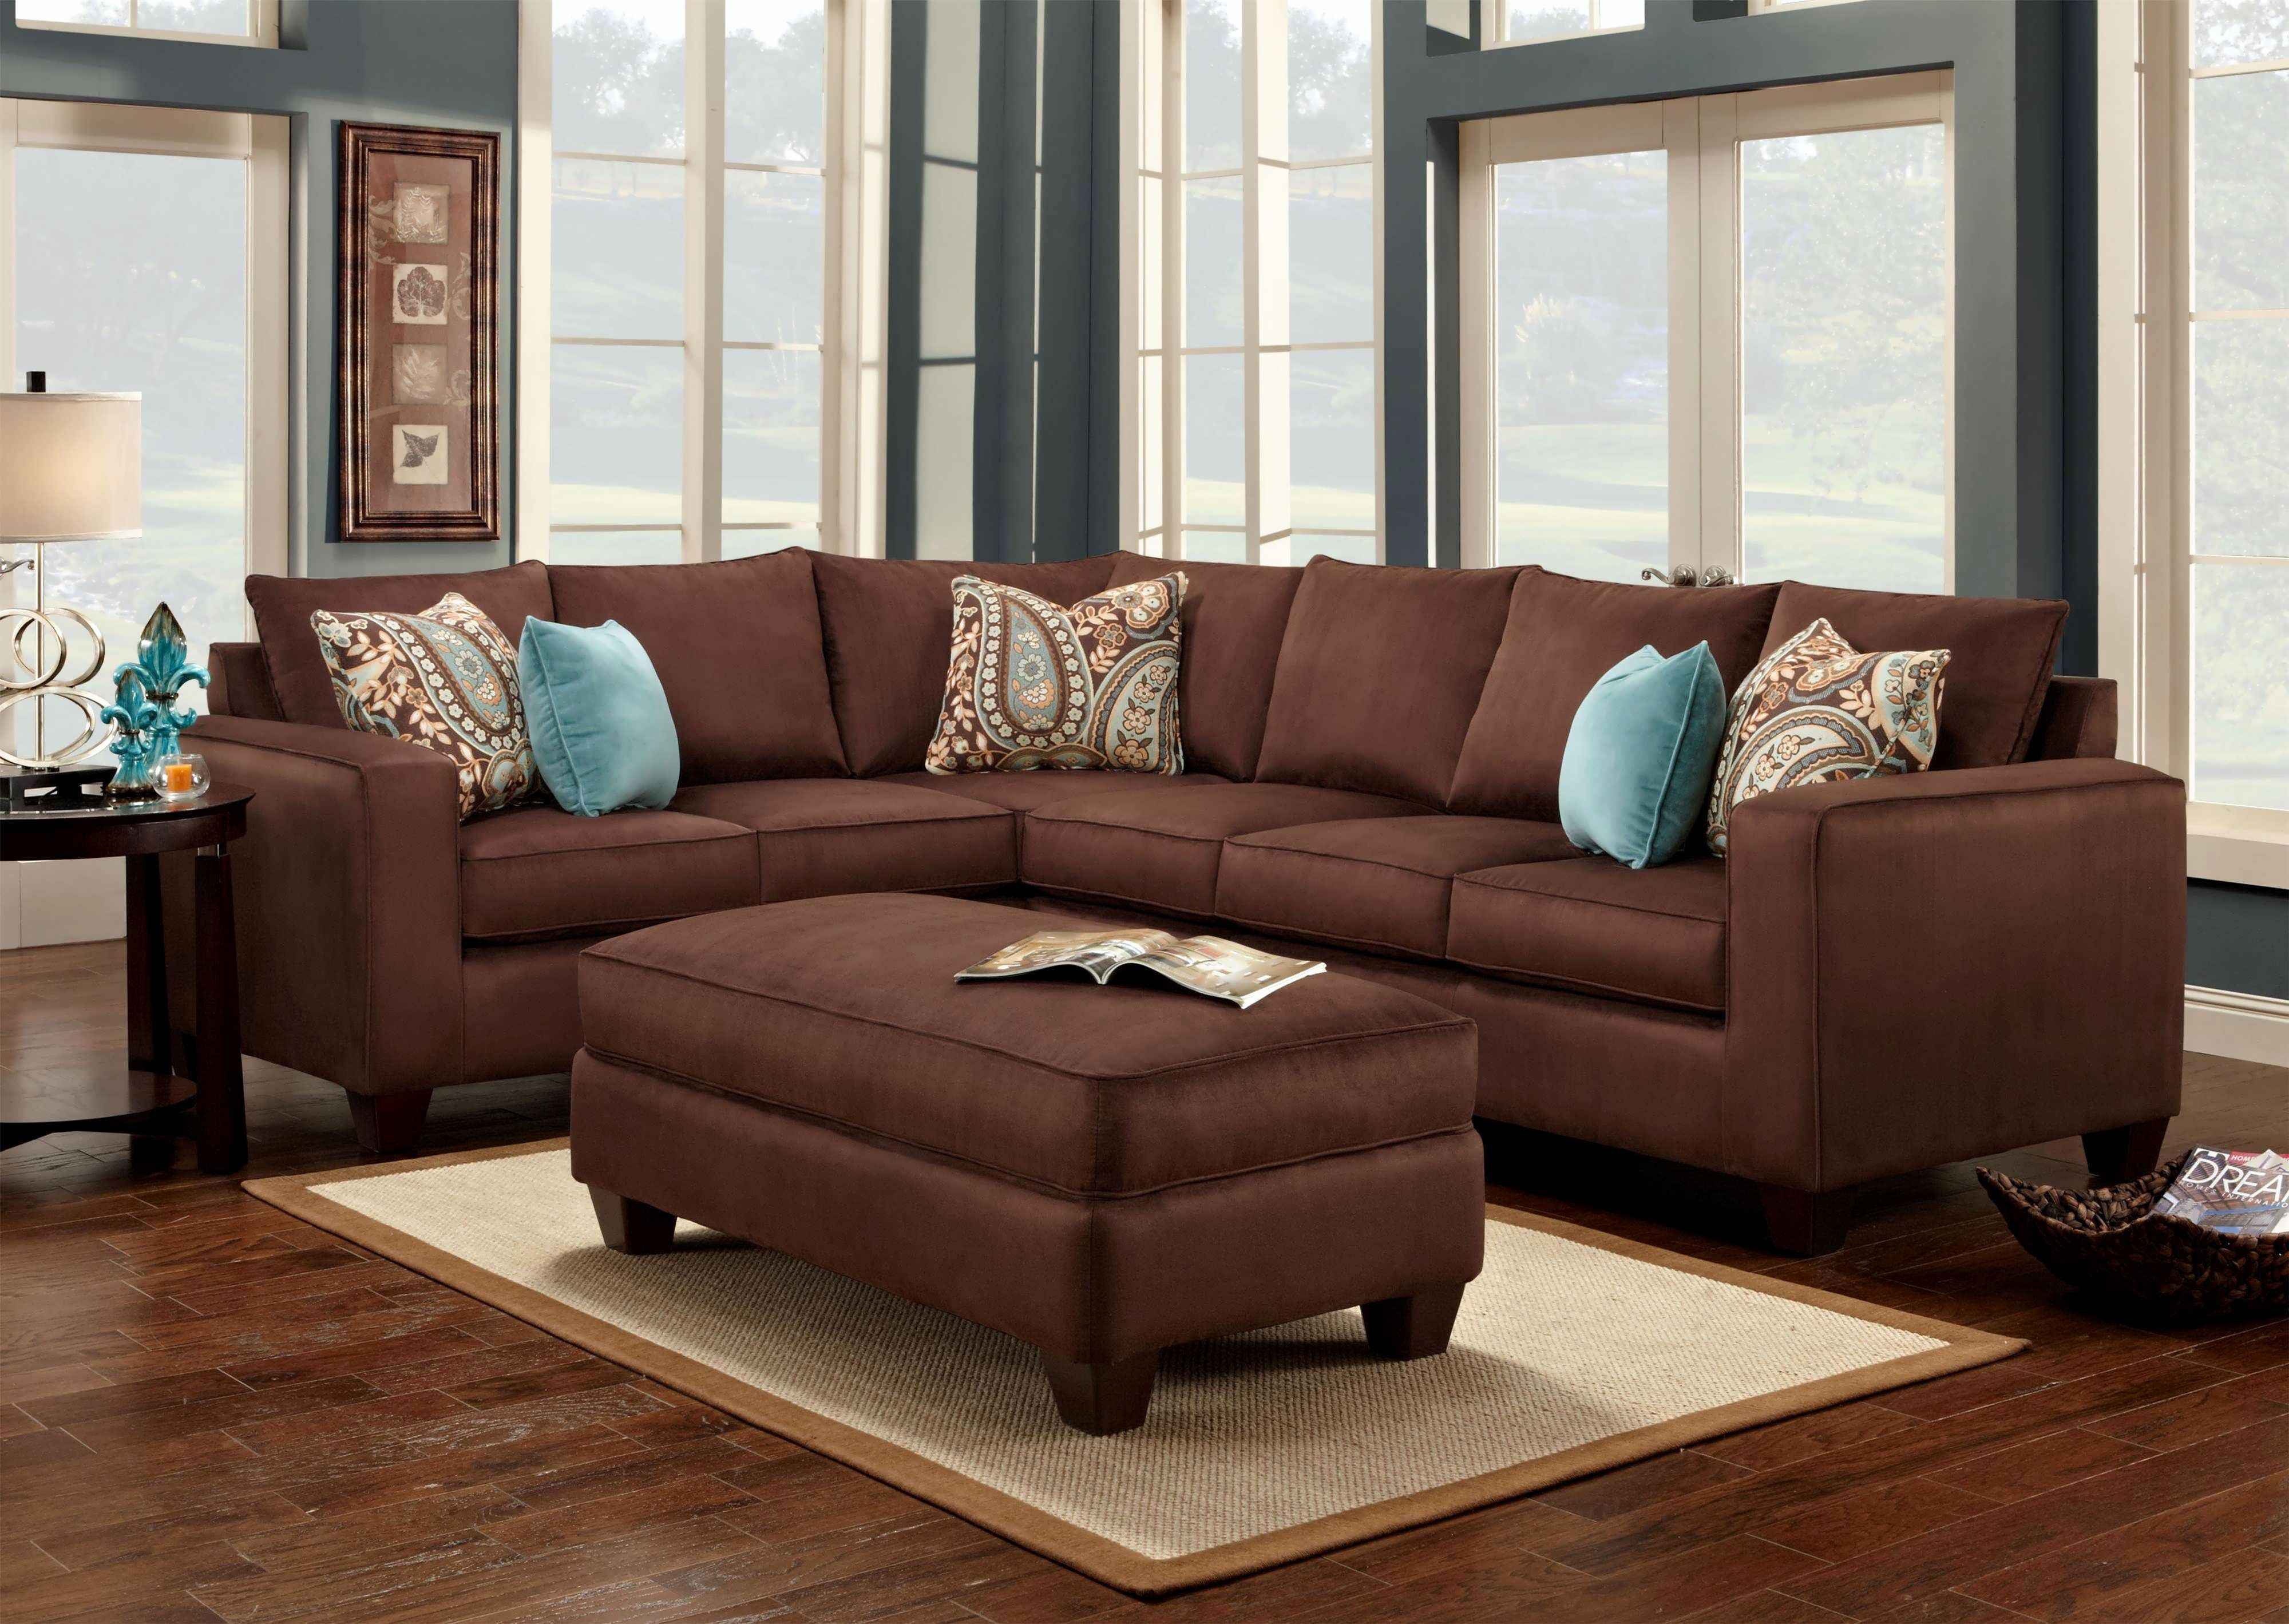 Awesome Microfiber Leather Sofa Microfiber Leather Sofa New Sofas Fabulous  Ashley Furniture Sofa And Loveseat Ashley